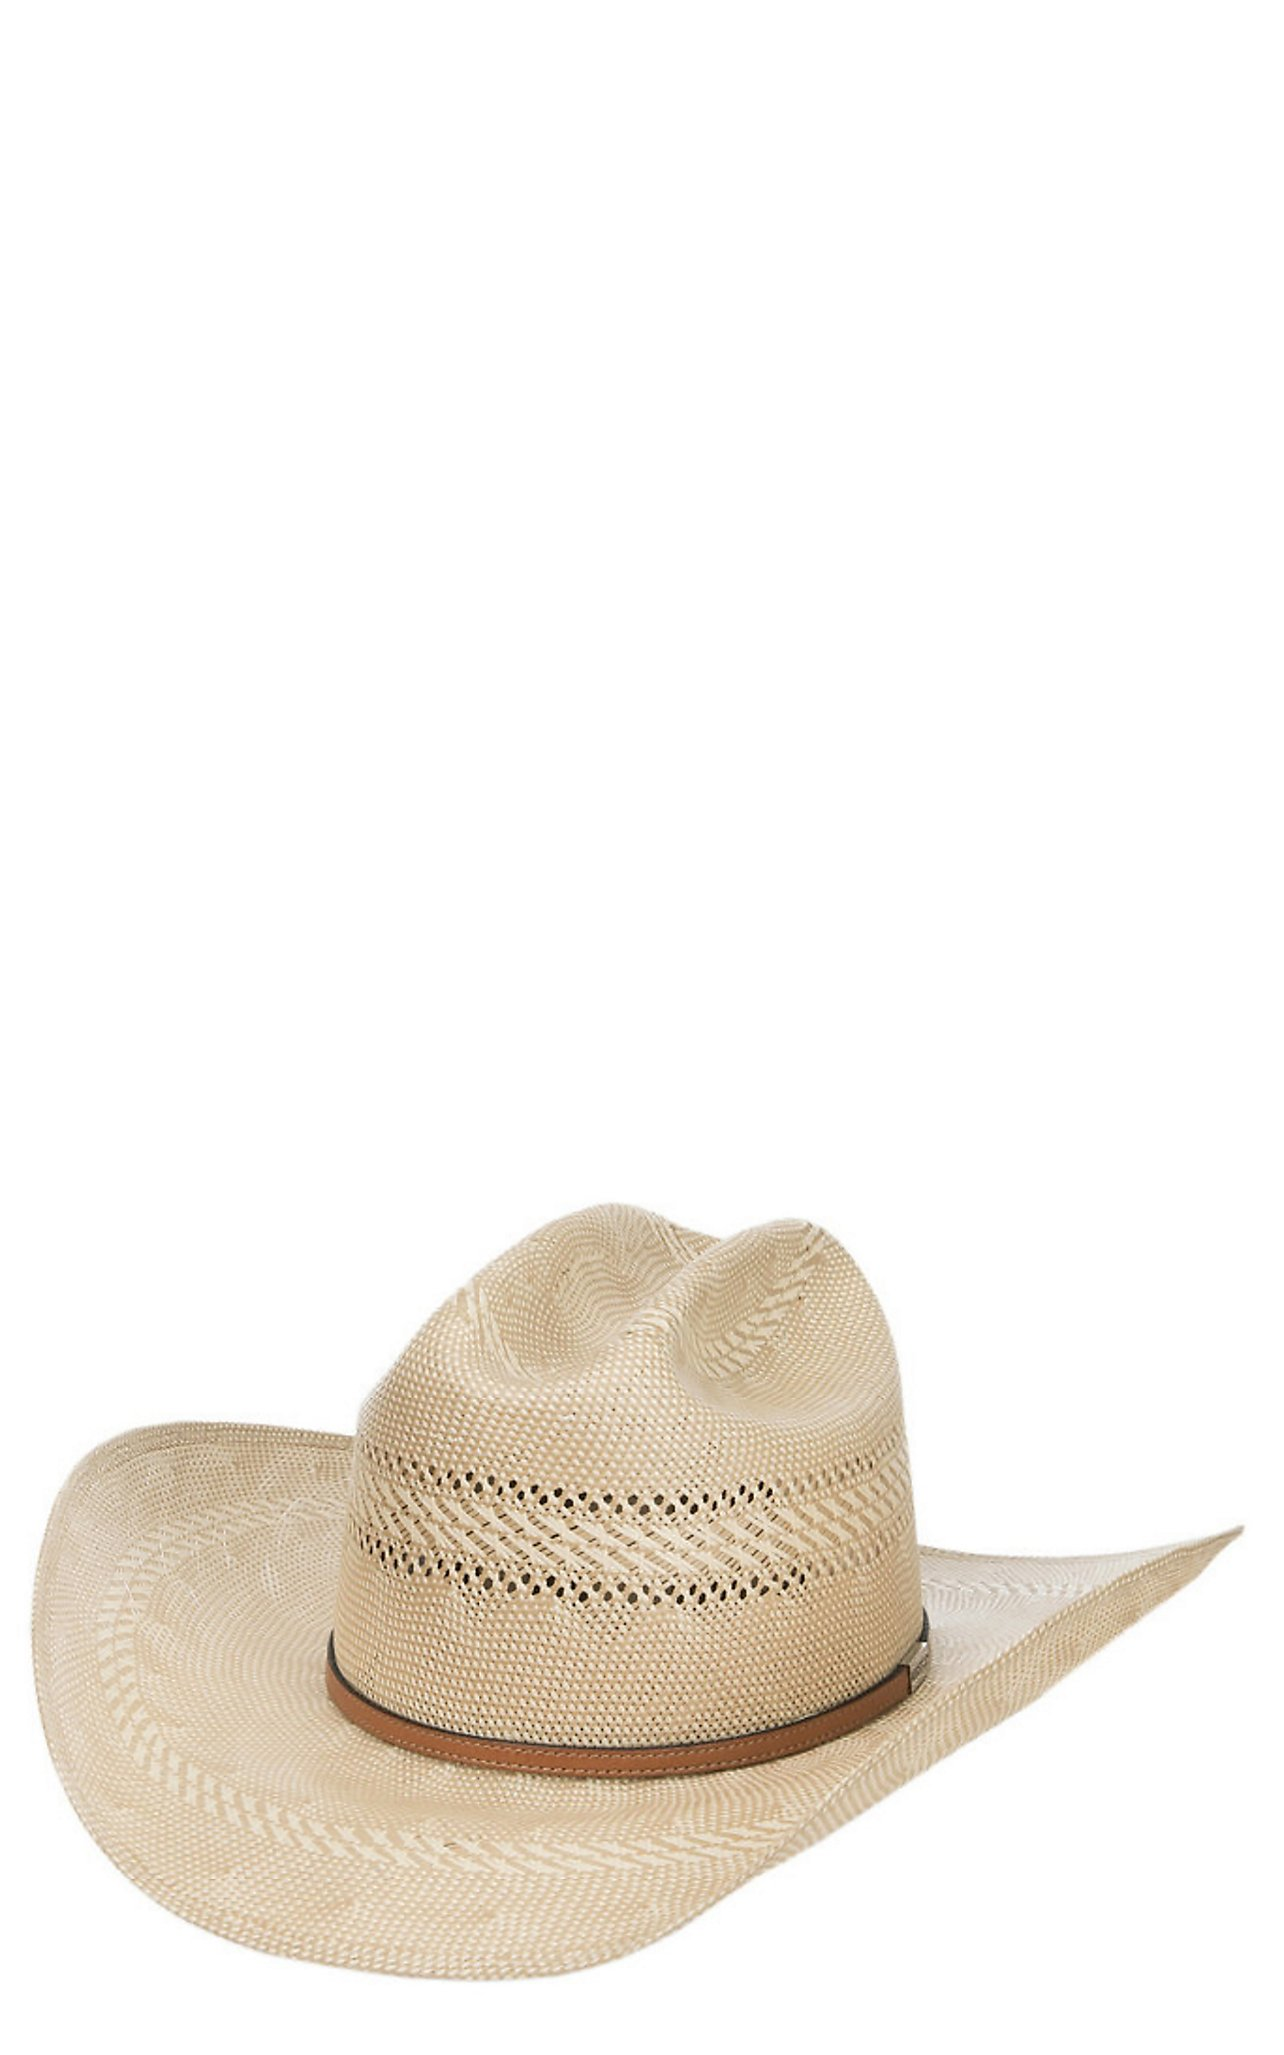 Resistol 50X Open Range Two Tone Natural and Tan Vented Cattleman Crown Straw  Hat  bf09210e70c